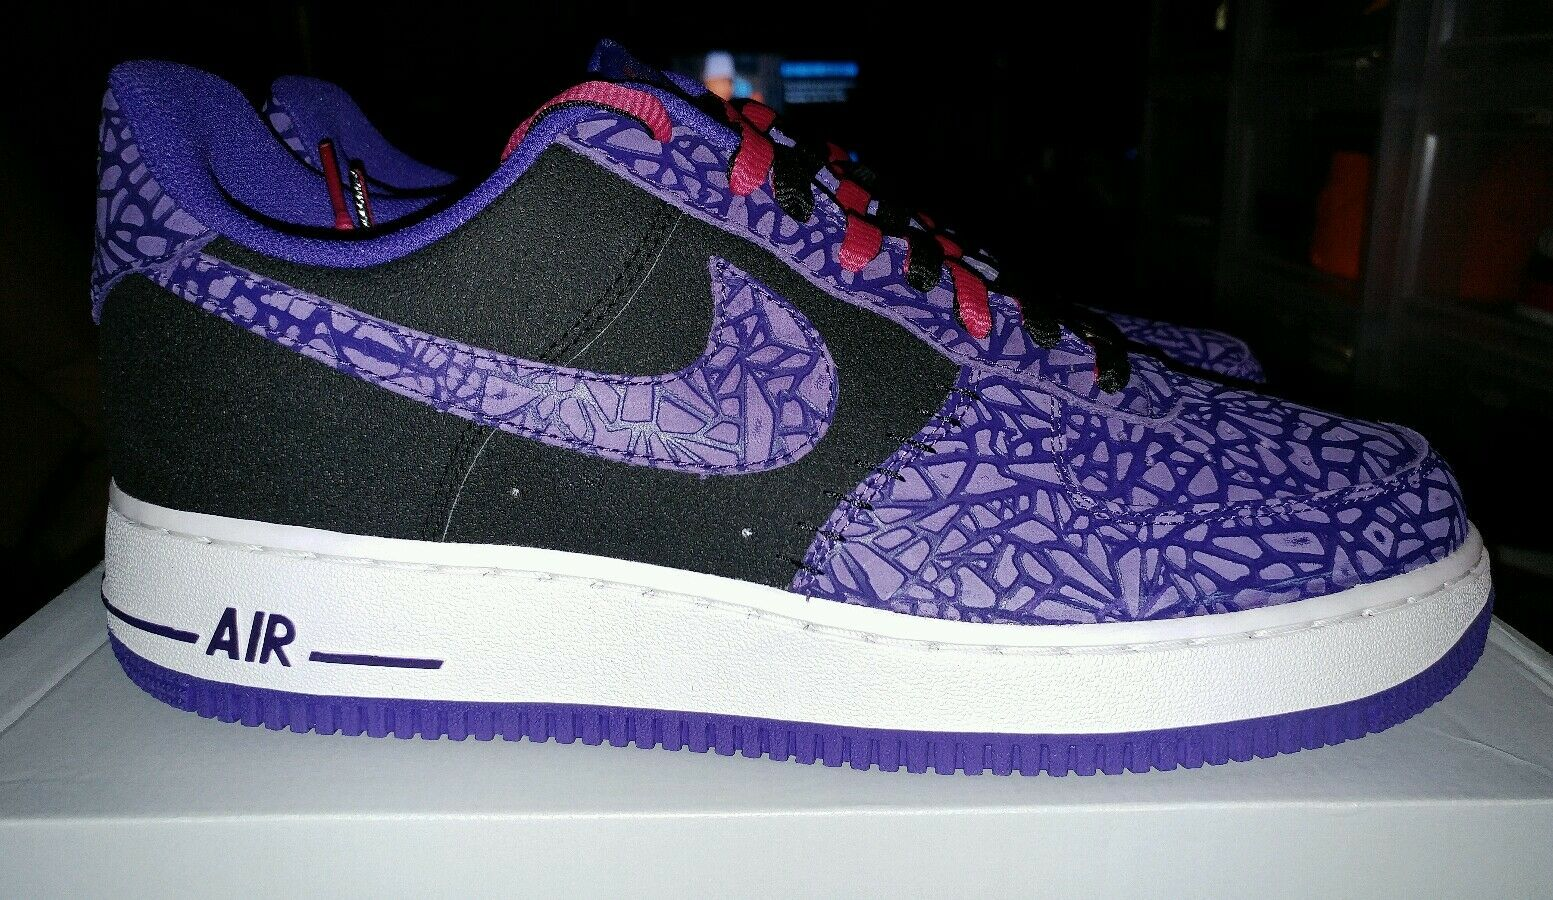 Nike Air Force 1,2013 Rare, Black / Court Purple, 488298 025, Size 10